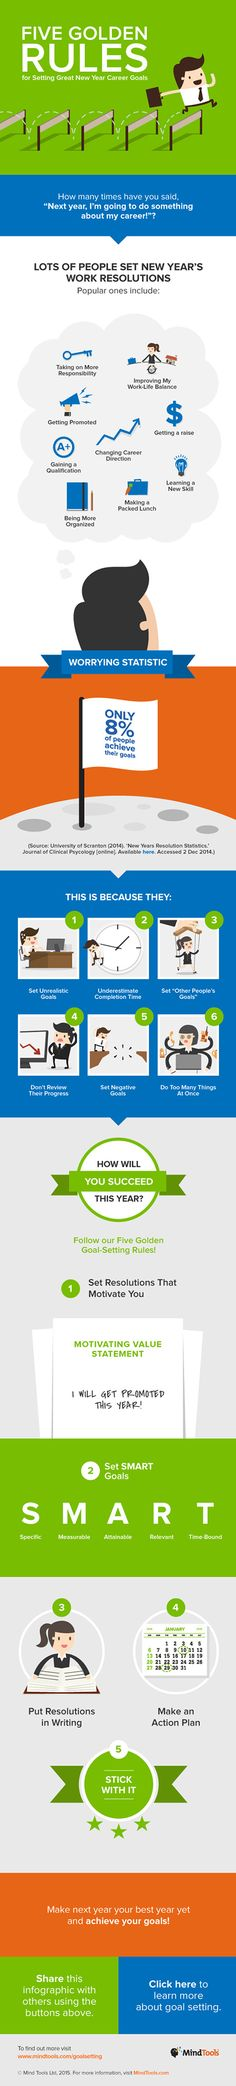 5 Golden rules for setting goals for your career. via @MindTools